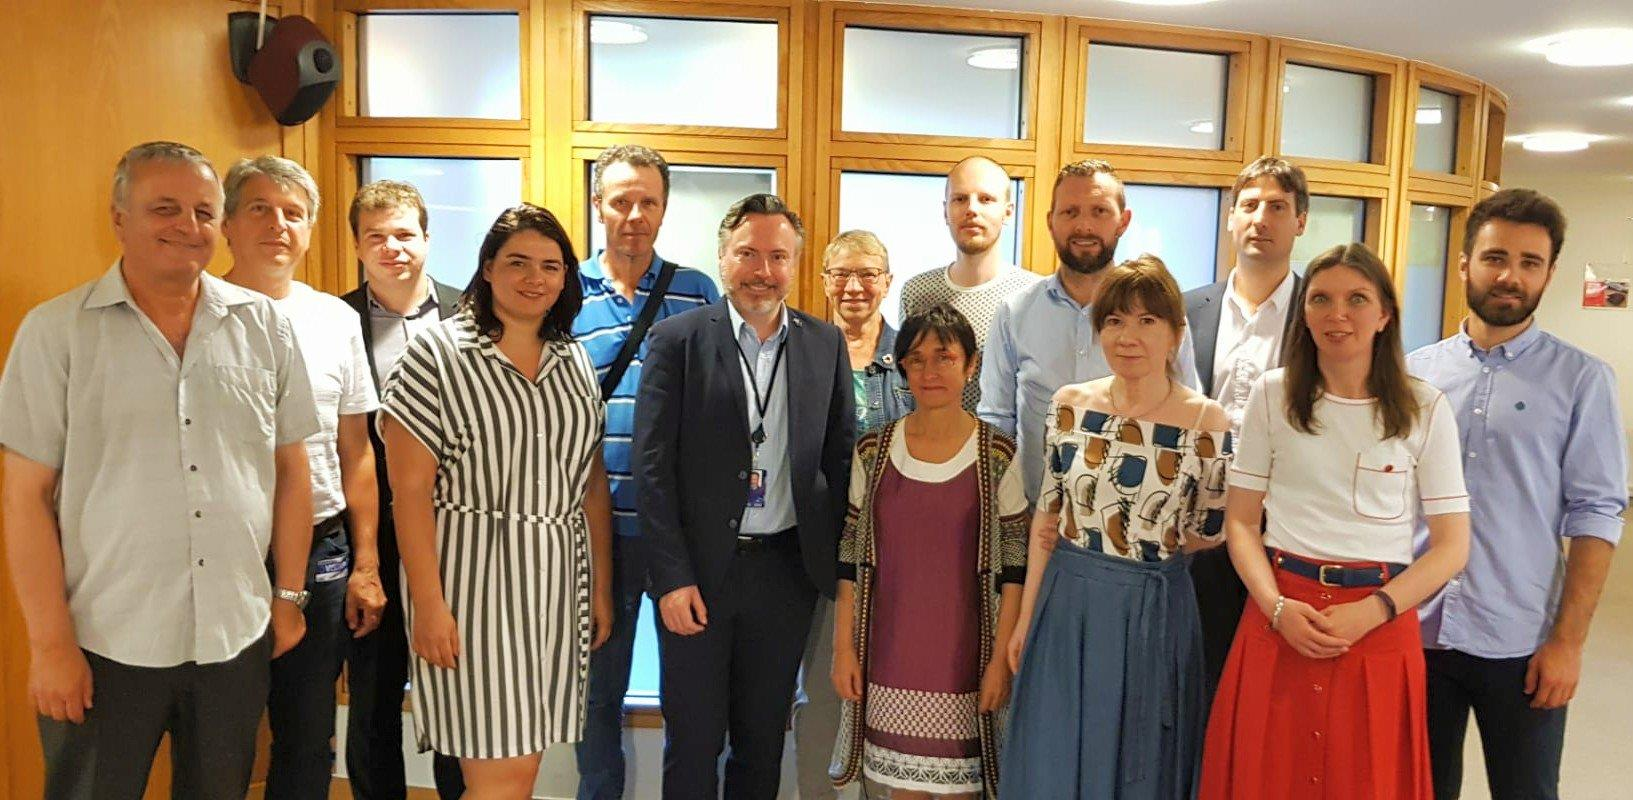 Defending a union of peoples: renewed cooperation between EFA party and EFA members in the European Parliament